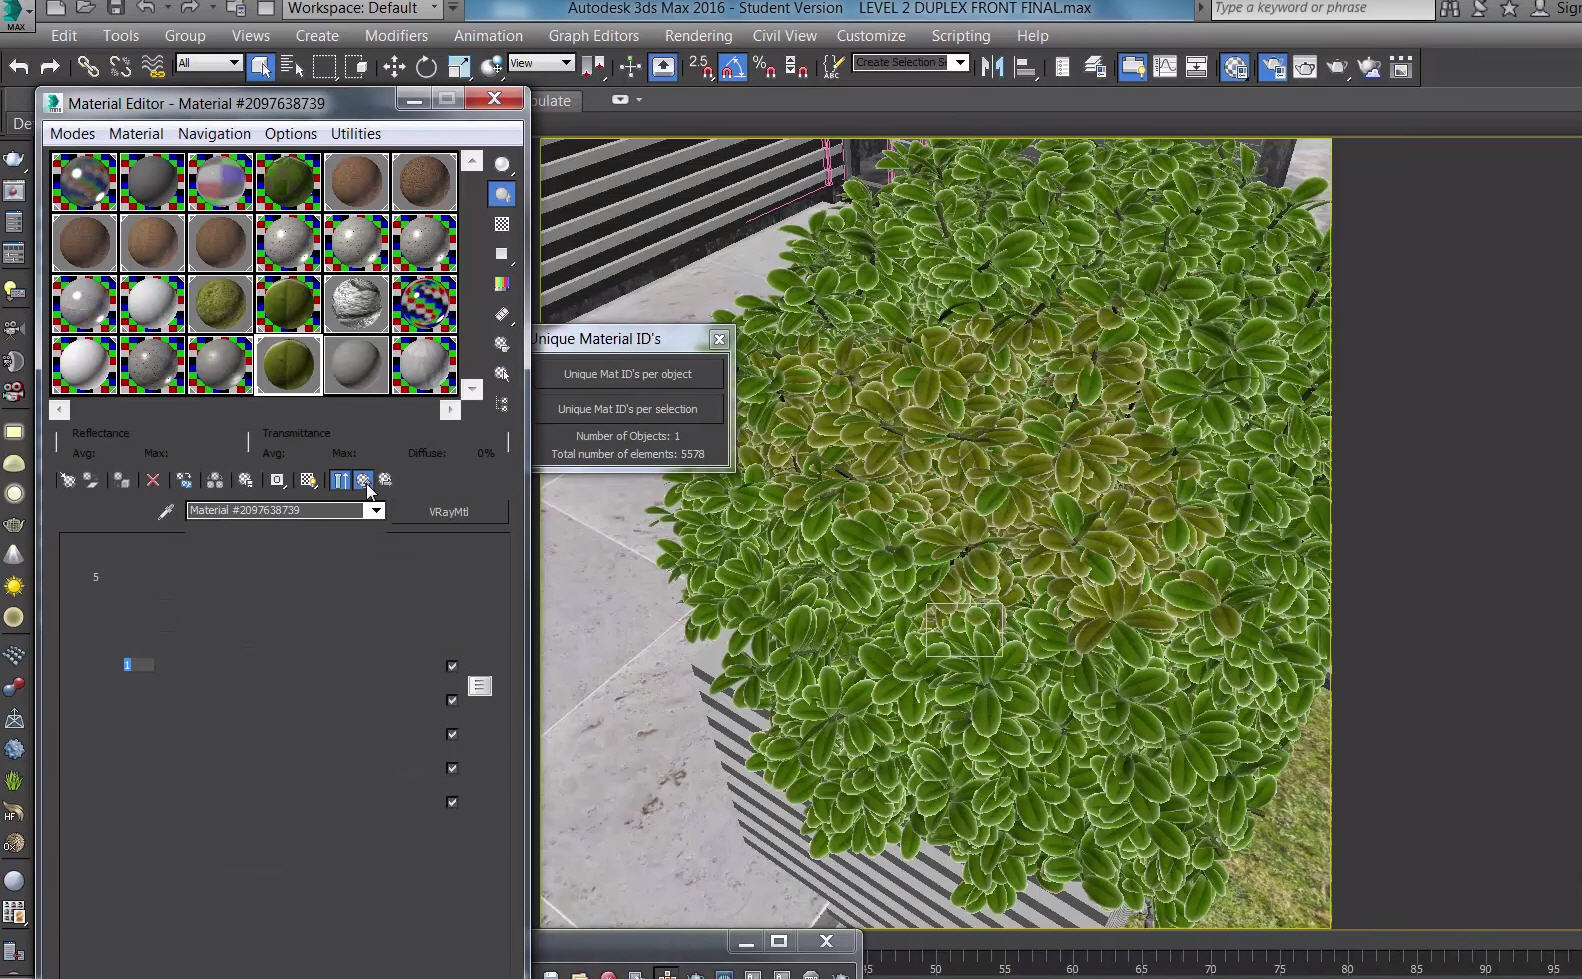 Realistic Vegetation with Unique Materials ID for 3ds Max | CG TUTORIAL